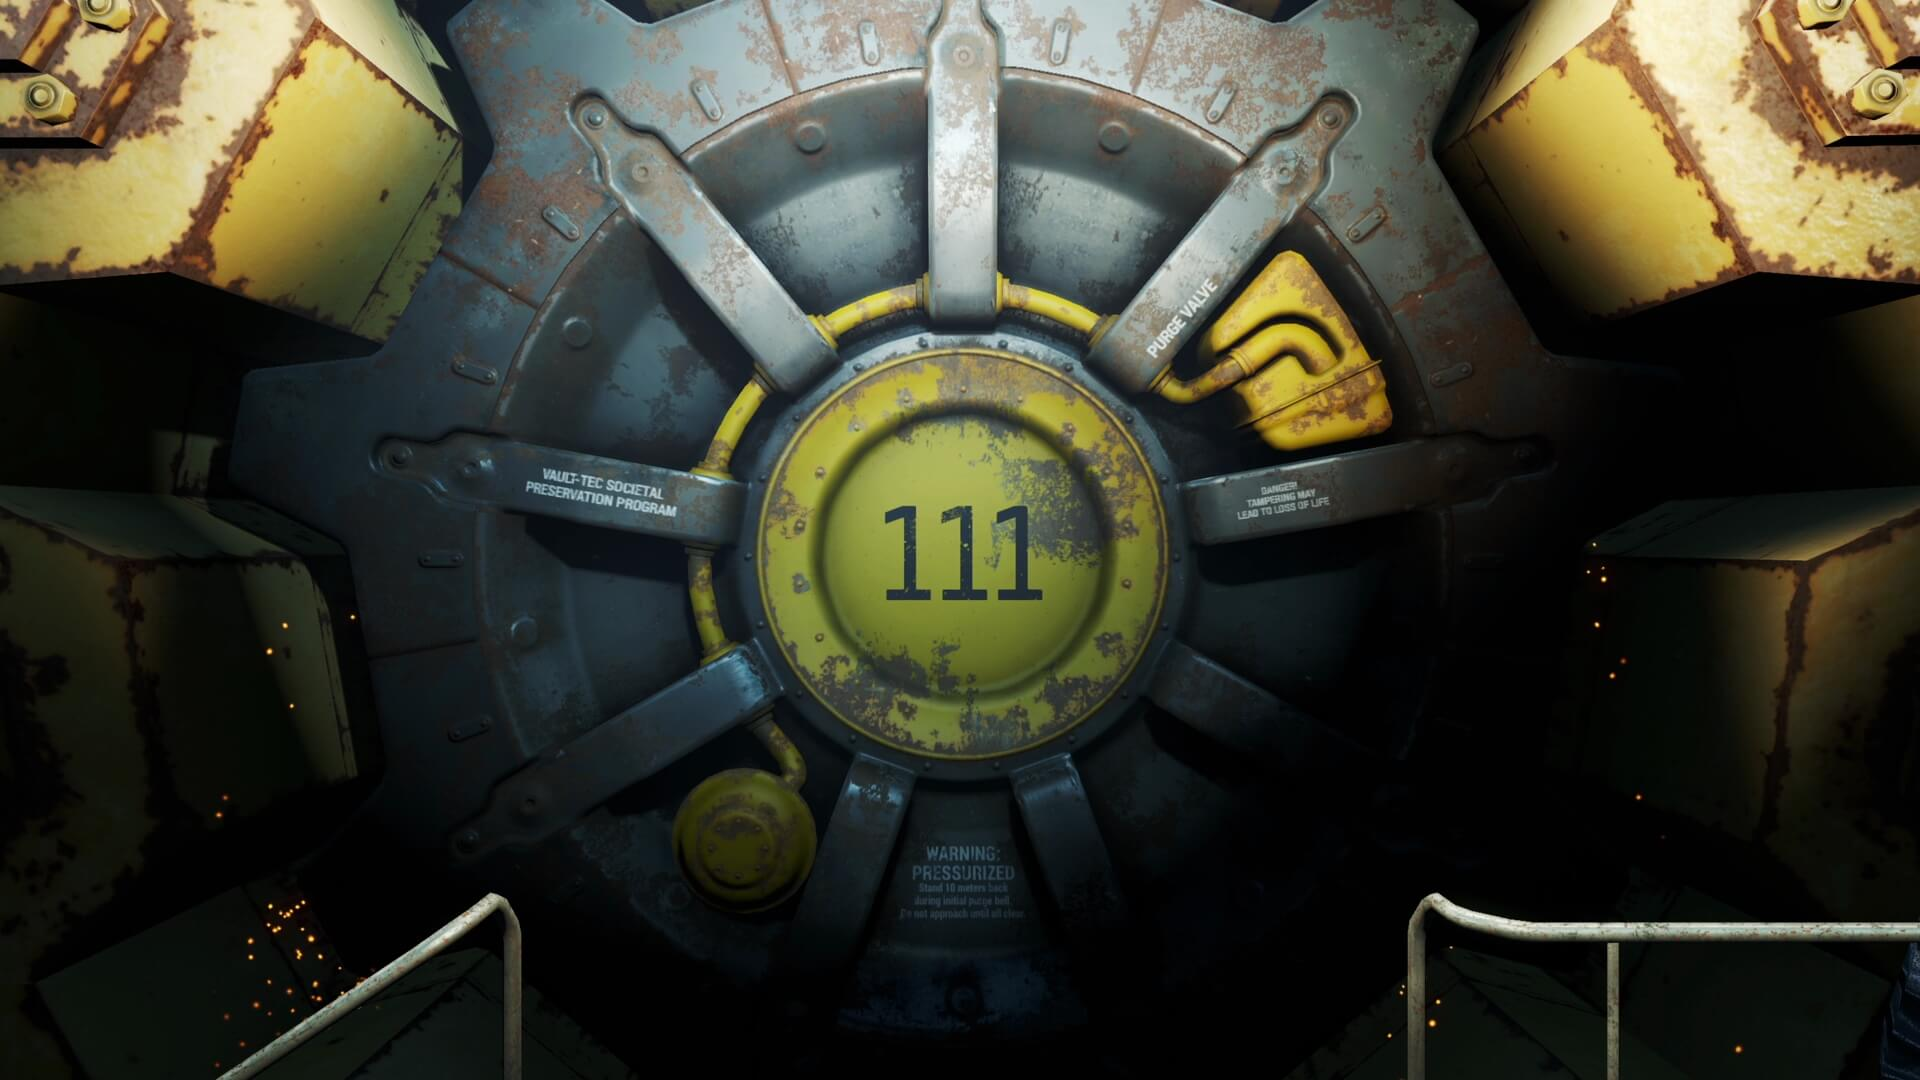 Fallout 4 Mods Are About To Arrive On Consoles